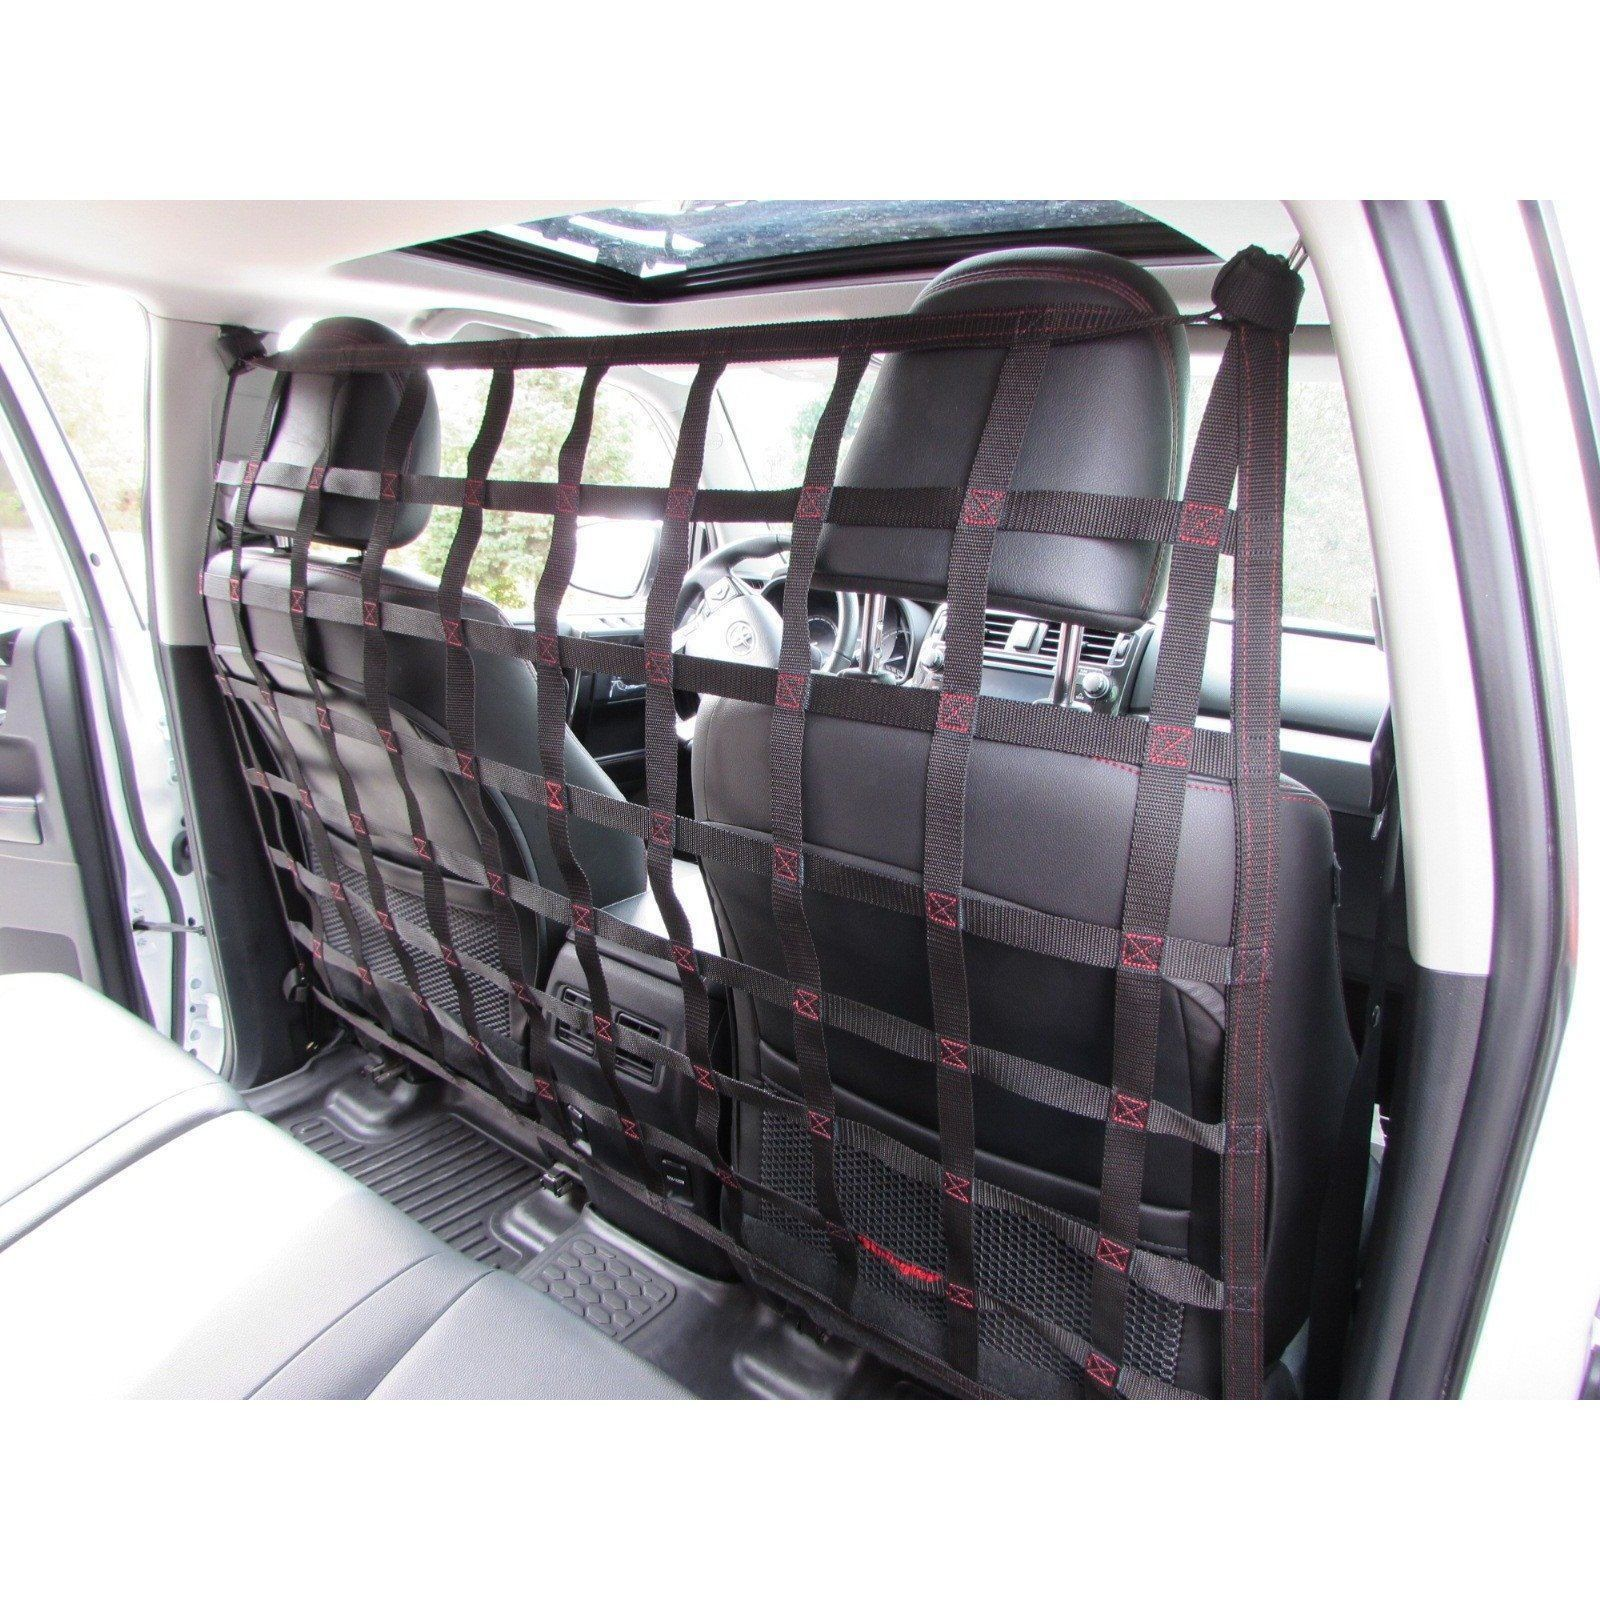 2011 Newer Chevrolet Spark Behind Front Seats Barrier Divider Net Tacoma Access Cab Toyota Tacoma Toyota Land Cruiser Prado